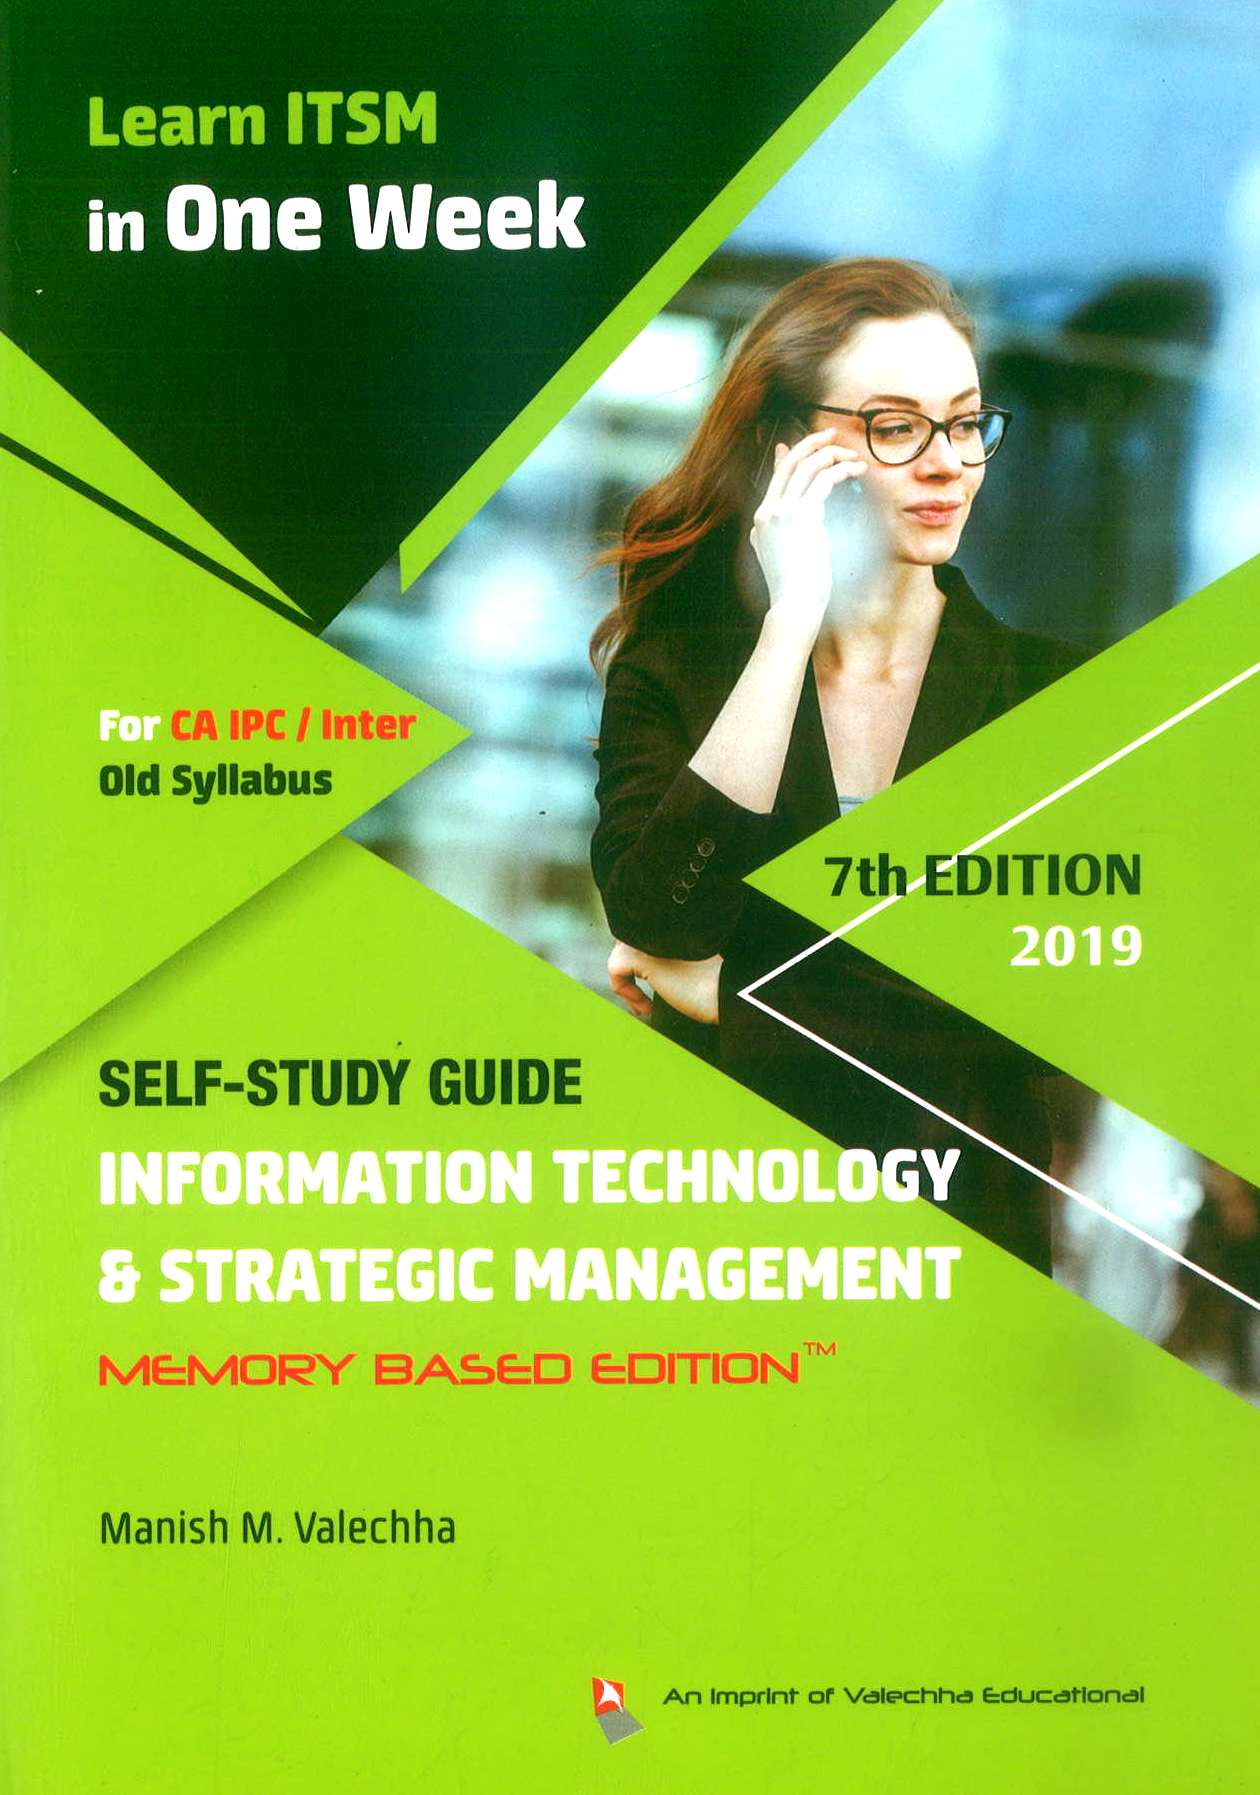 Valechha Educational Self Study Guide on Information Technology and Strategic Management (Memory Based Edition) for CA IPC/Intermediate by Manish M. Valechha (Valechha Educational Publishing) 7th Edition 2019 for May 2019 Exam